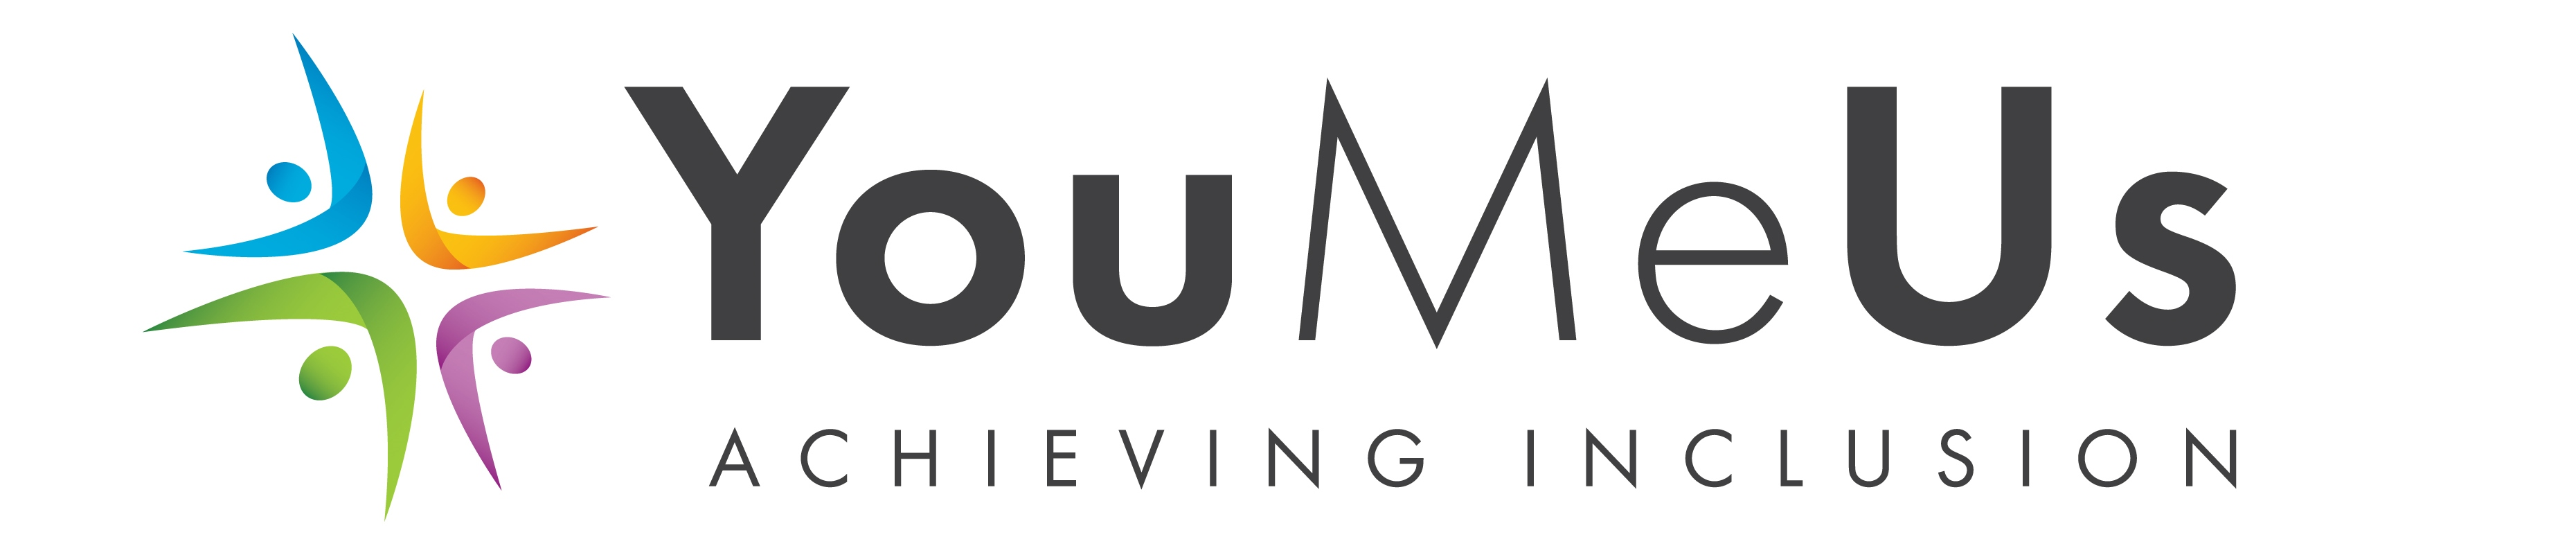 YouMeUs logo with text YouMeUs Achieving Inclusion